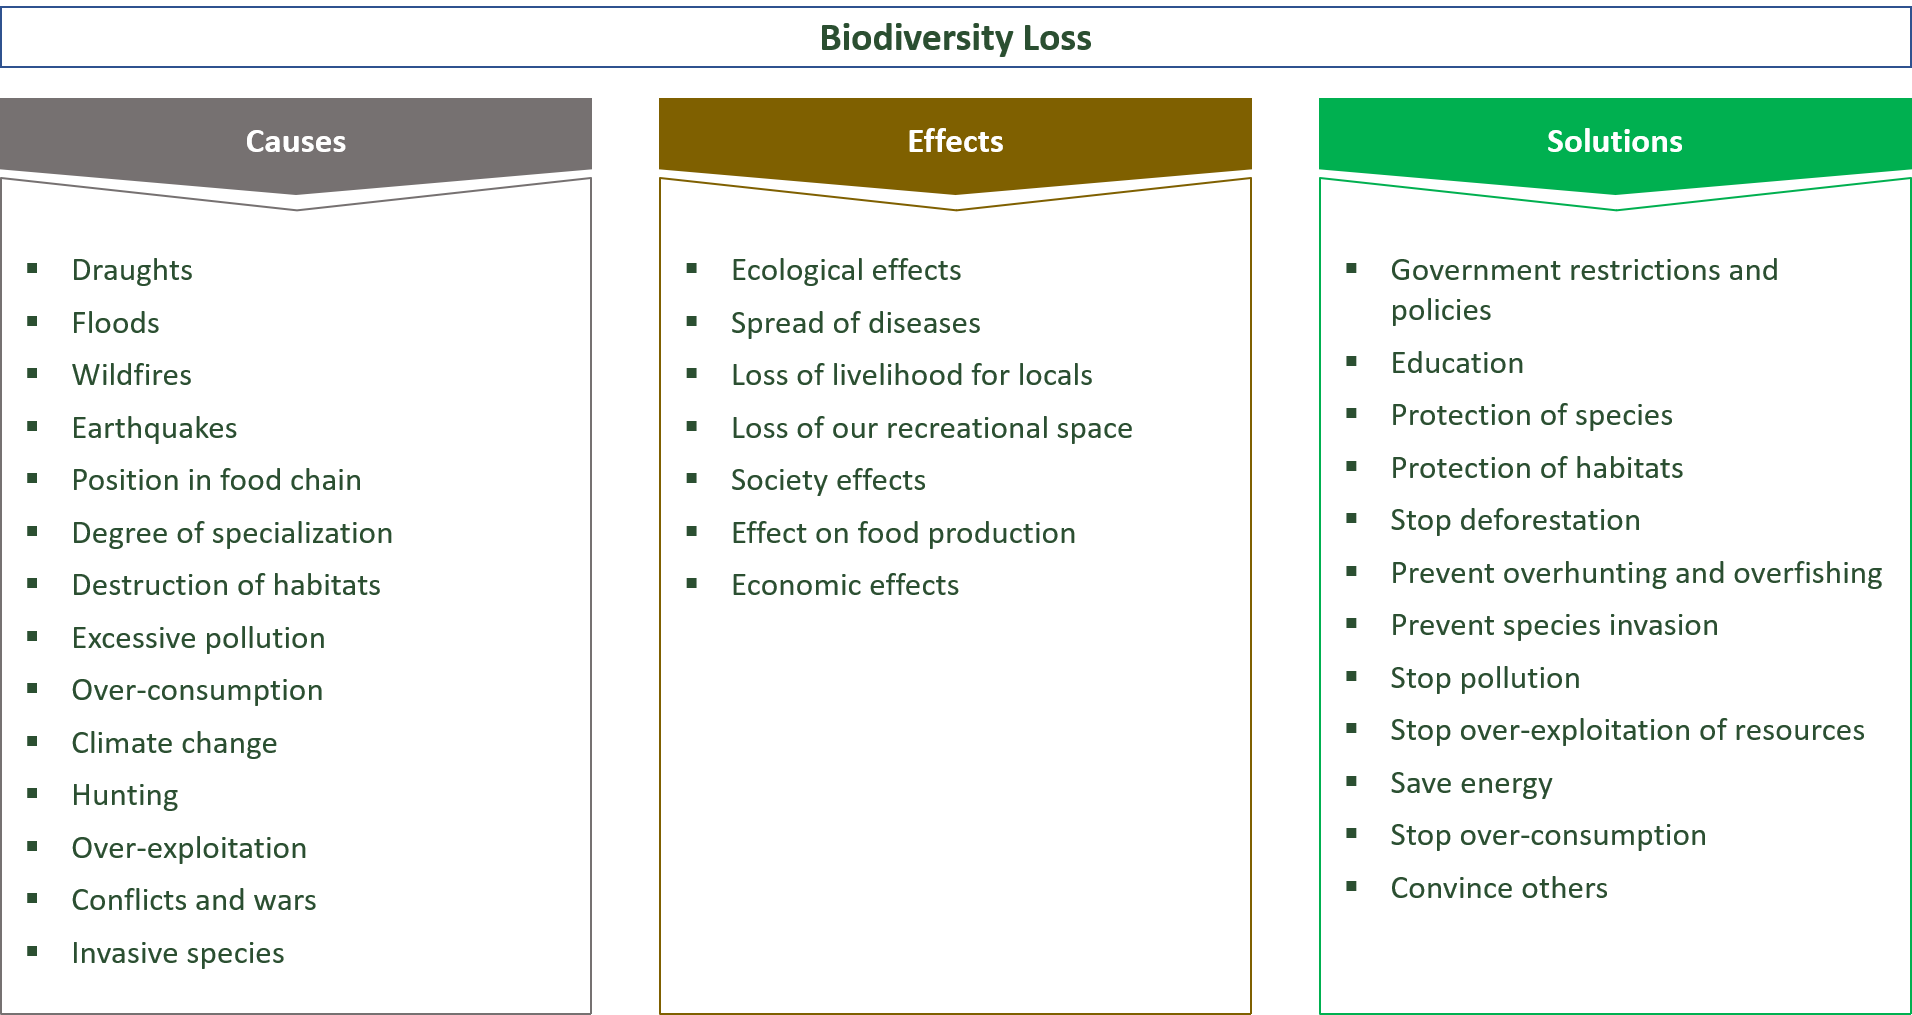 causes, effects and solutions for biodiversity loss